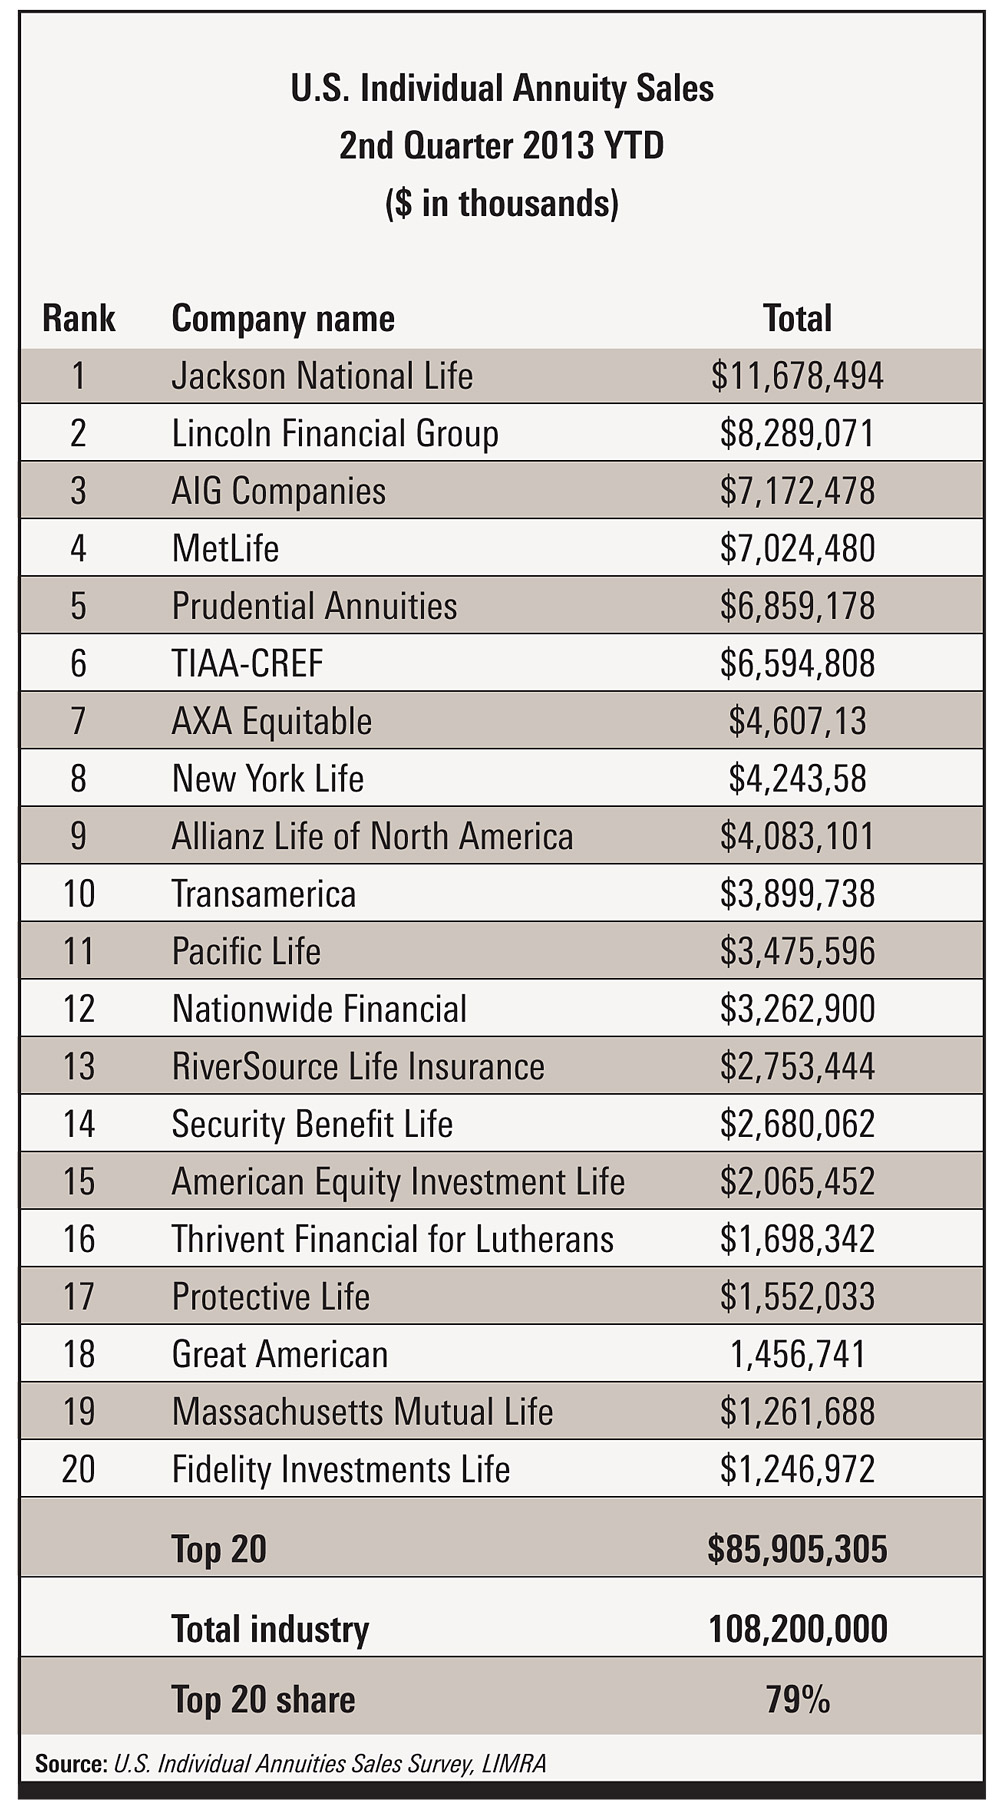 Top 20 companies for total annuity sales. Source: LIMRA